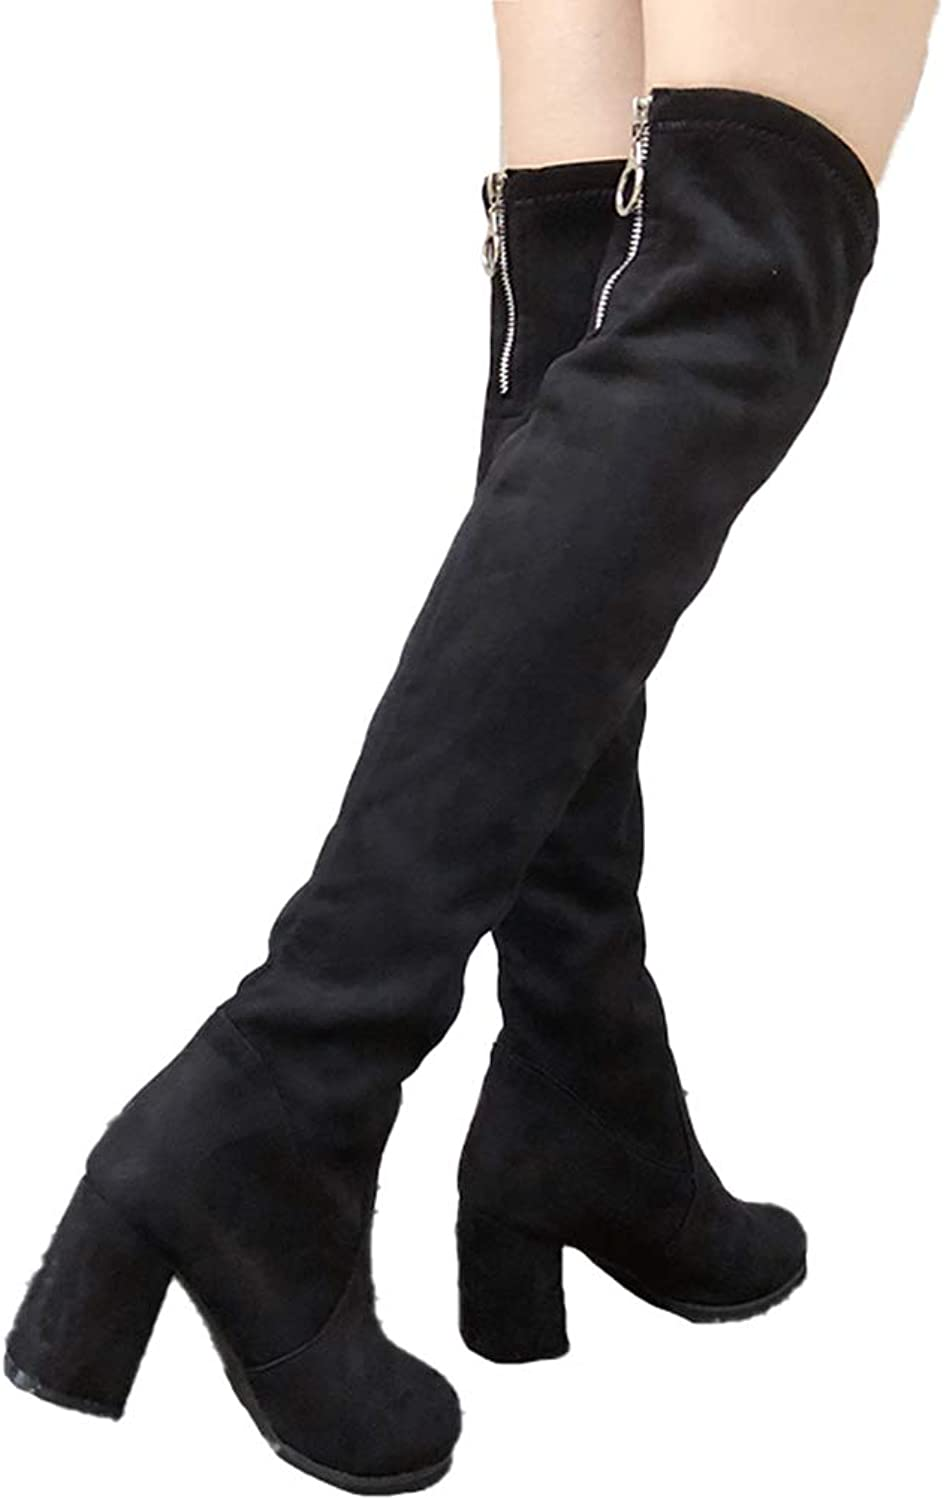 Women Fashion Winter Thigh High Boots Suede Slim Boots Over The Knee High Boots